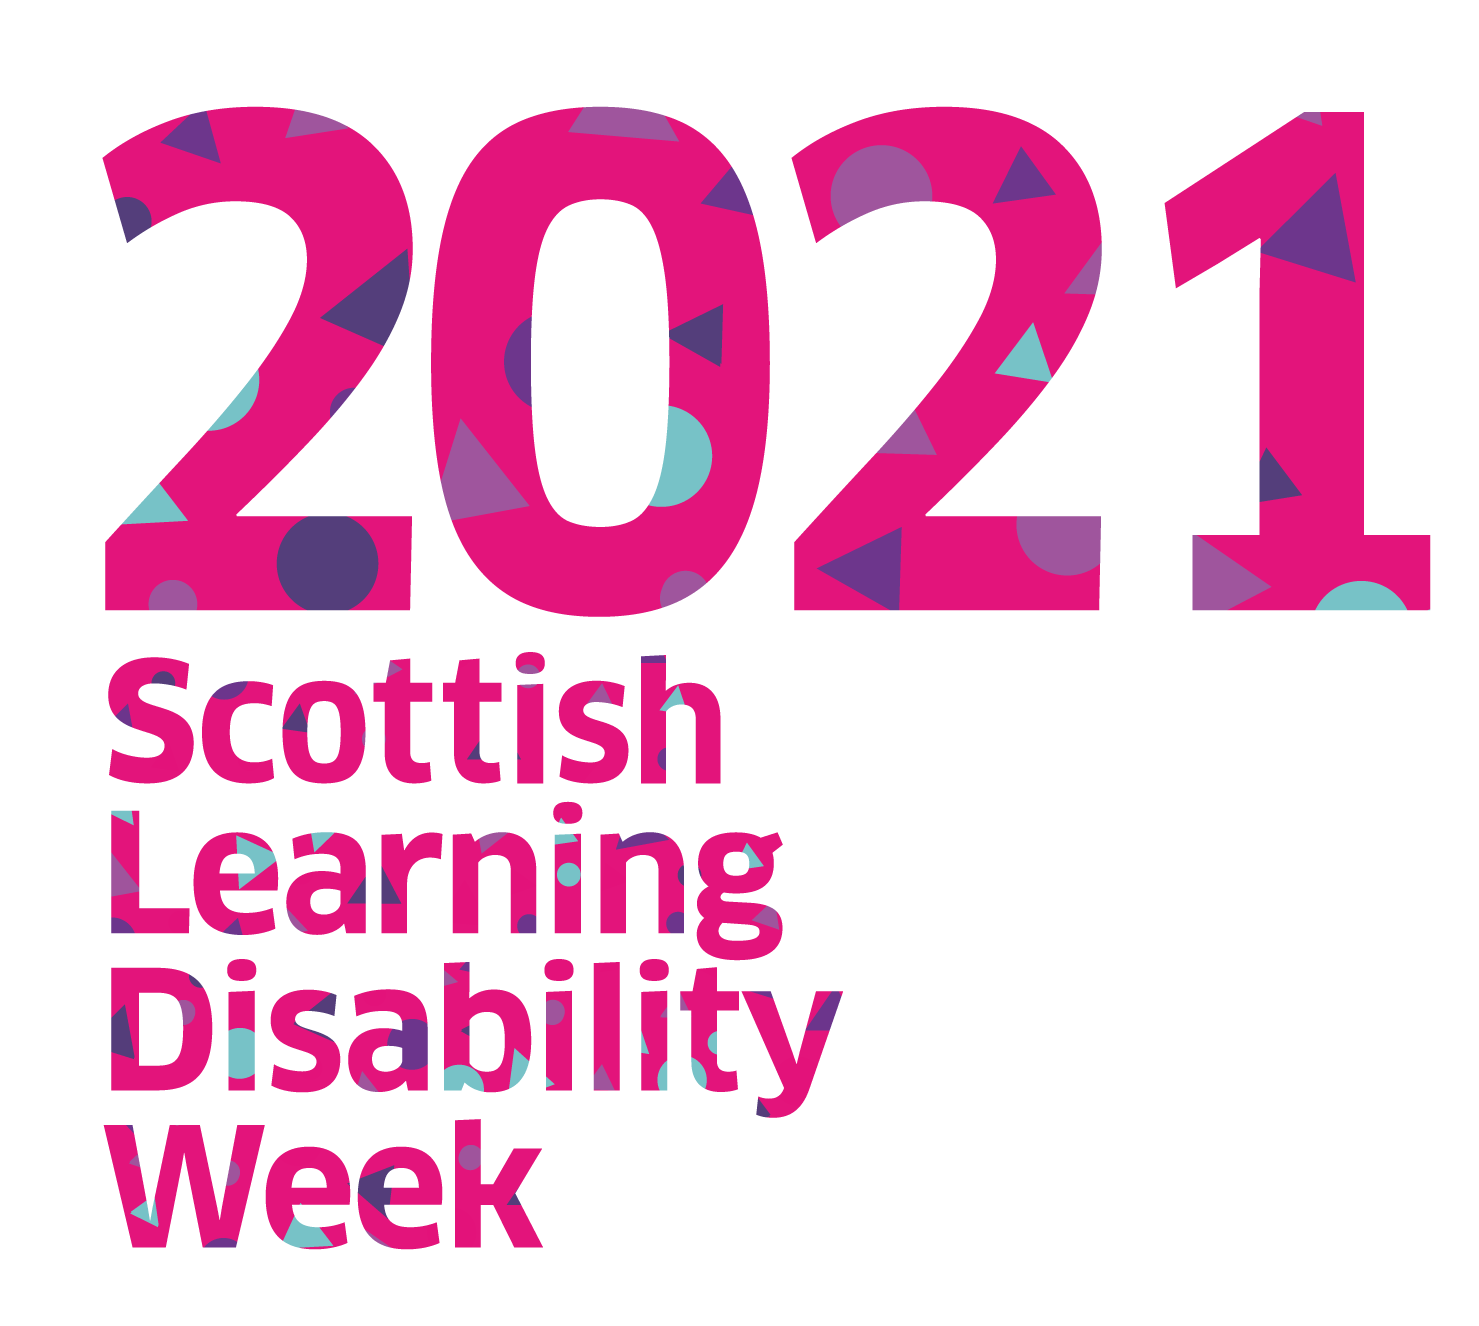 2021 Scottish Learning Disability Week